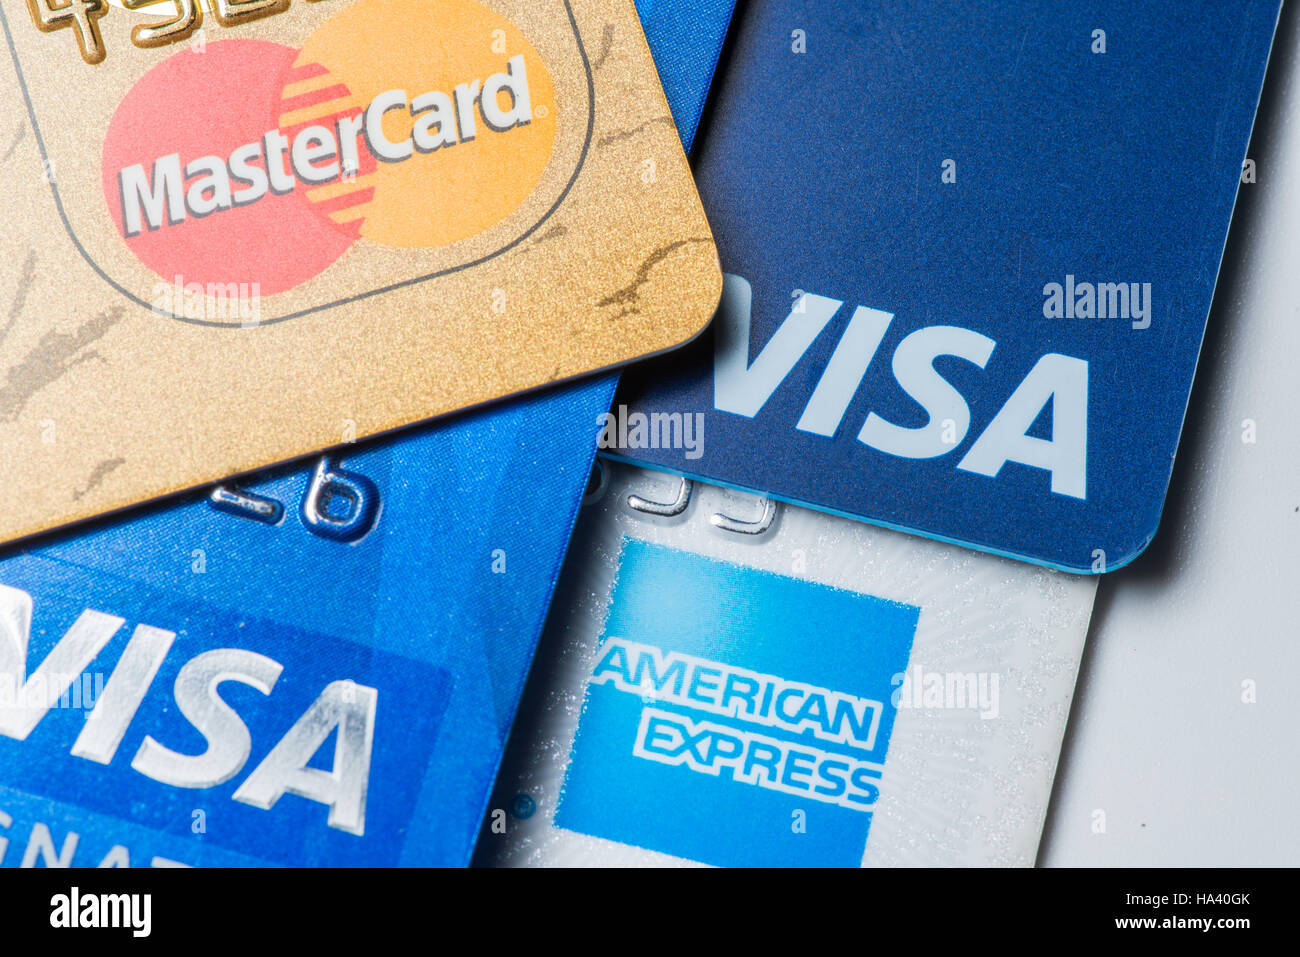 Close up of credit cards with MasterCard,Visa and American Express logos on white background,illustrative editorial - Stock Image